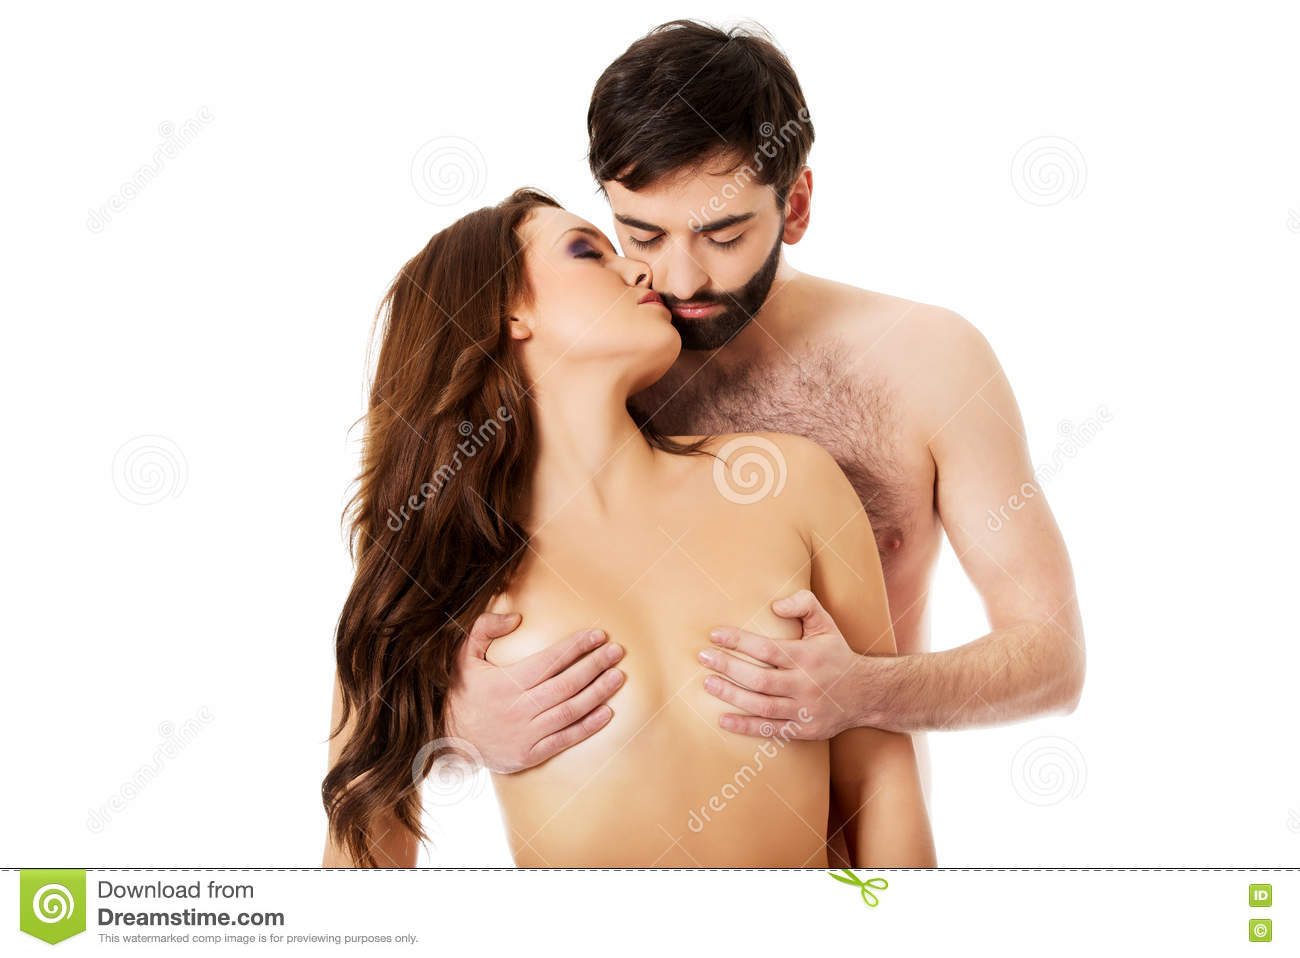 A man kissing breast